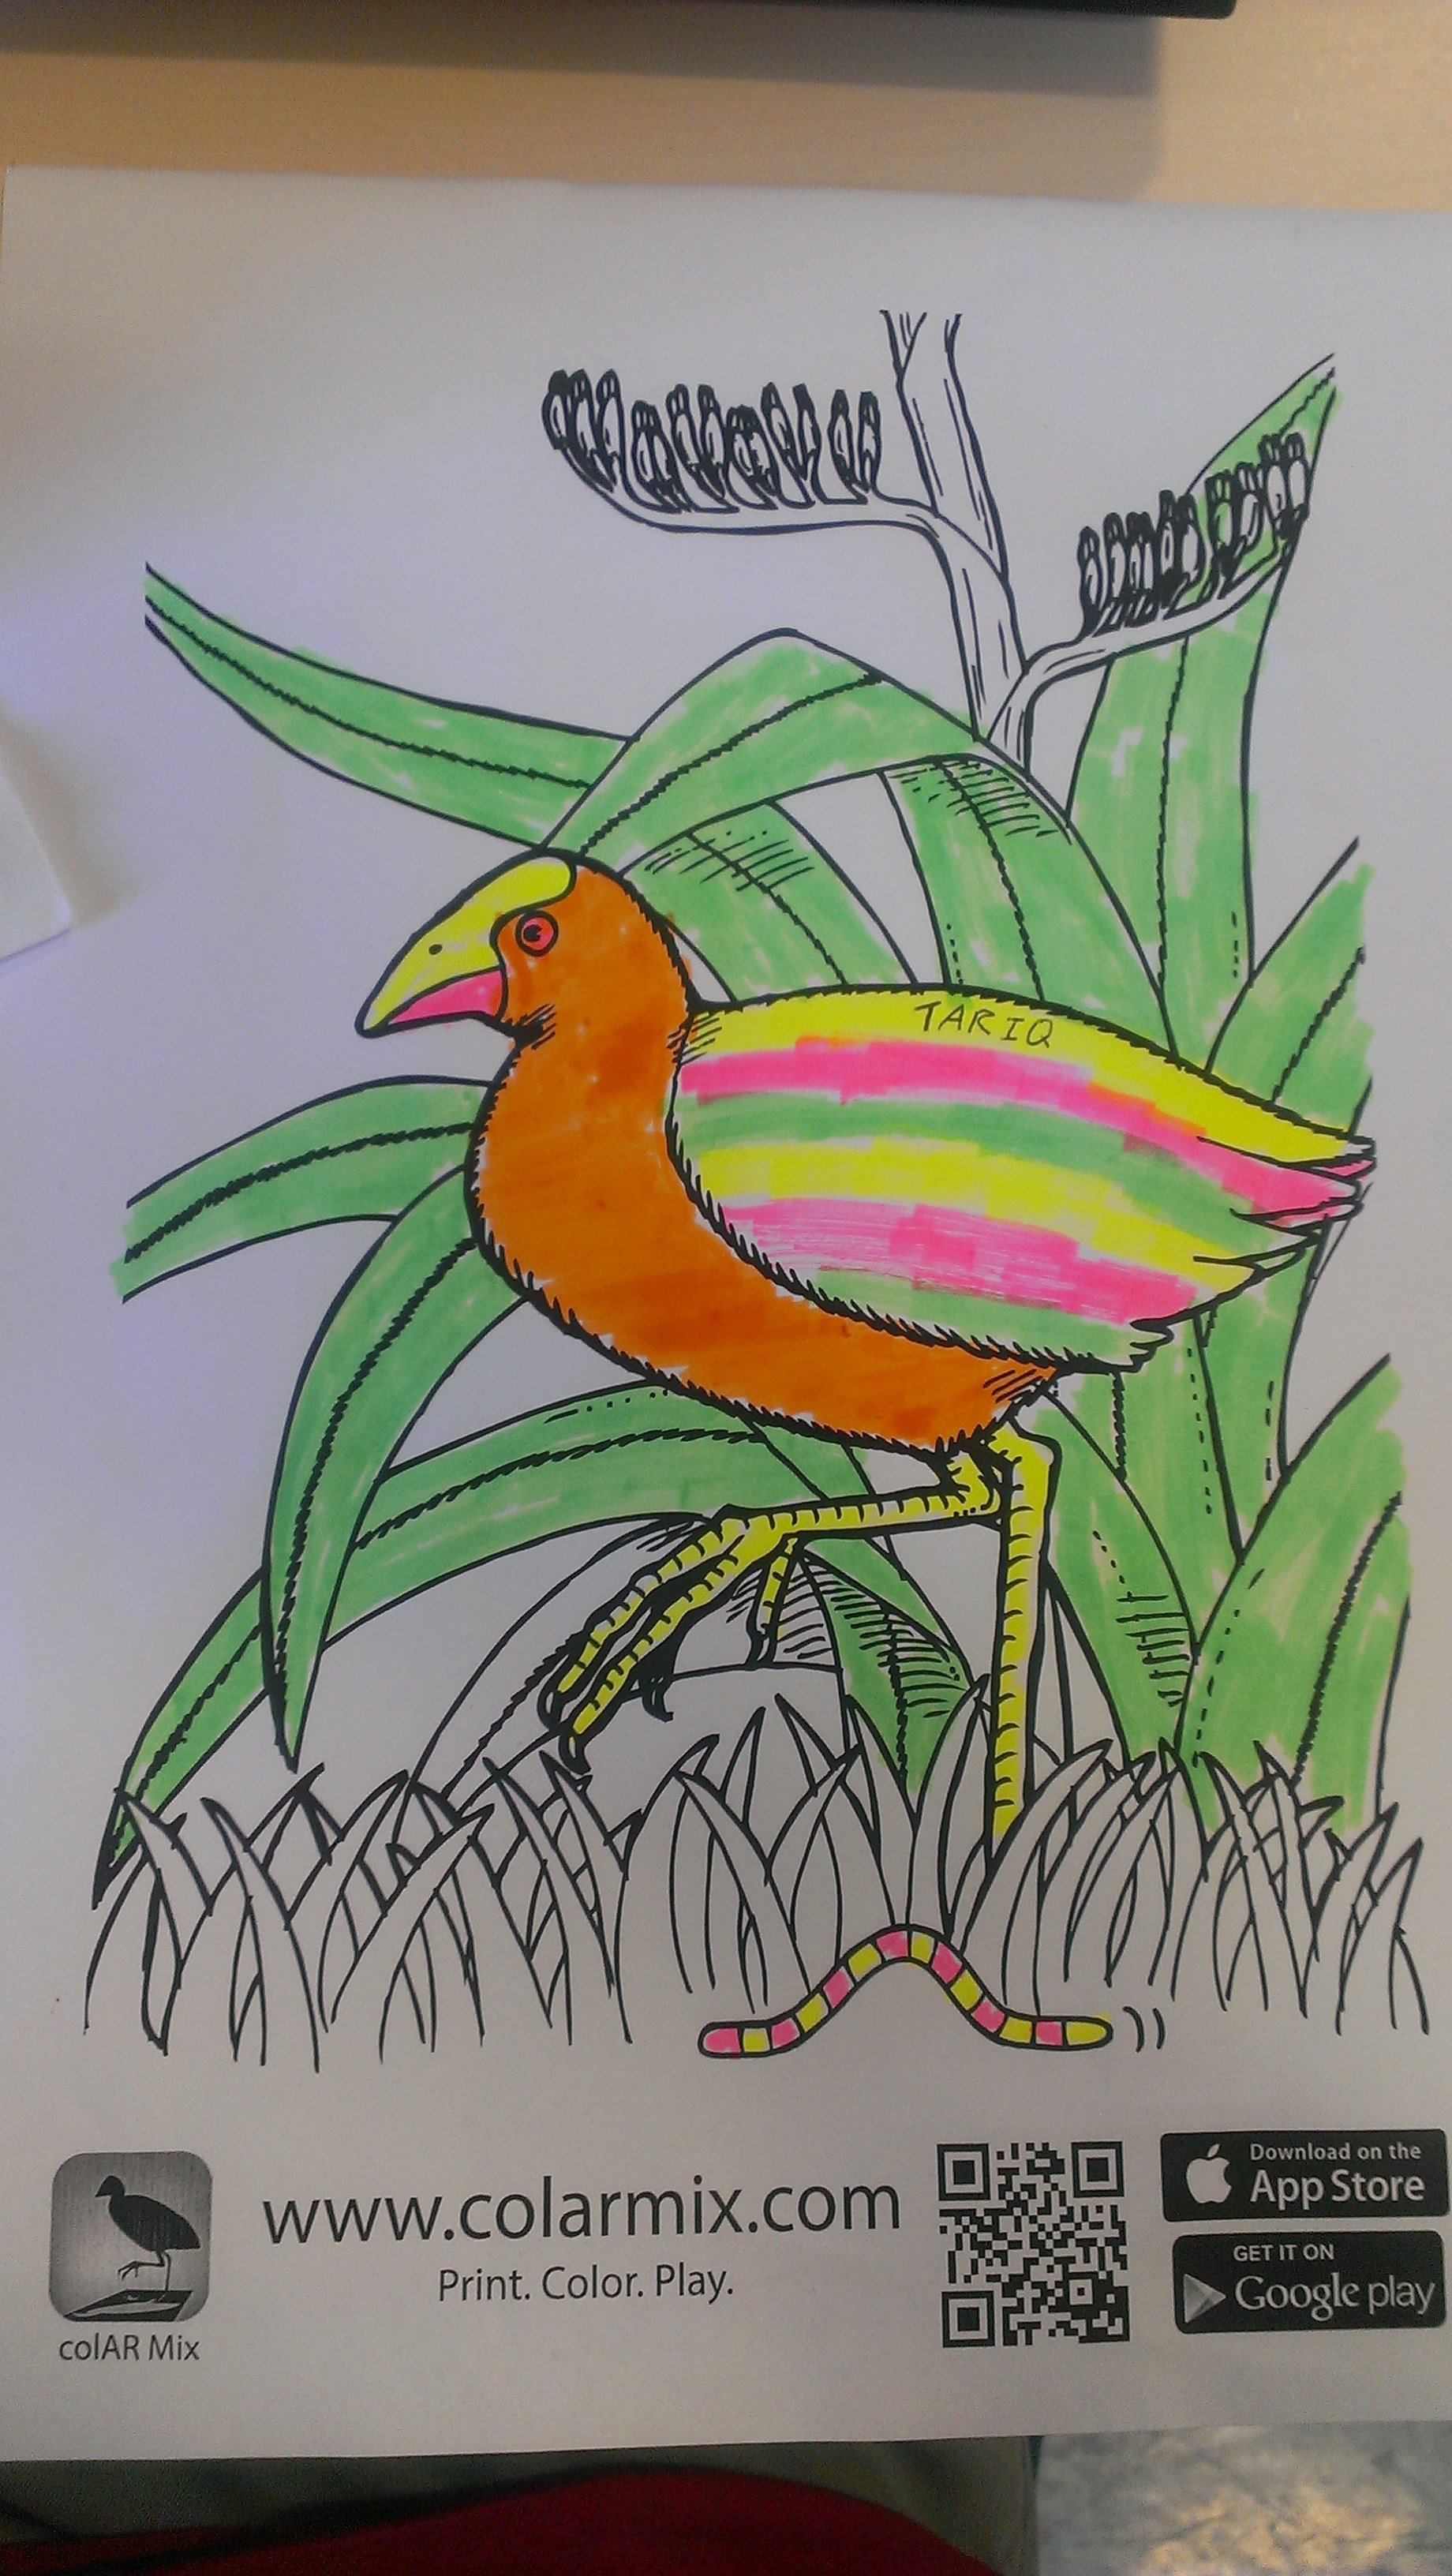 colar mix coloring pages - photo#41